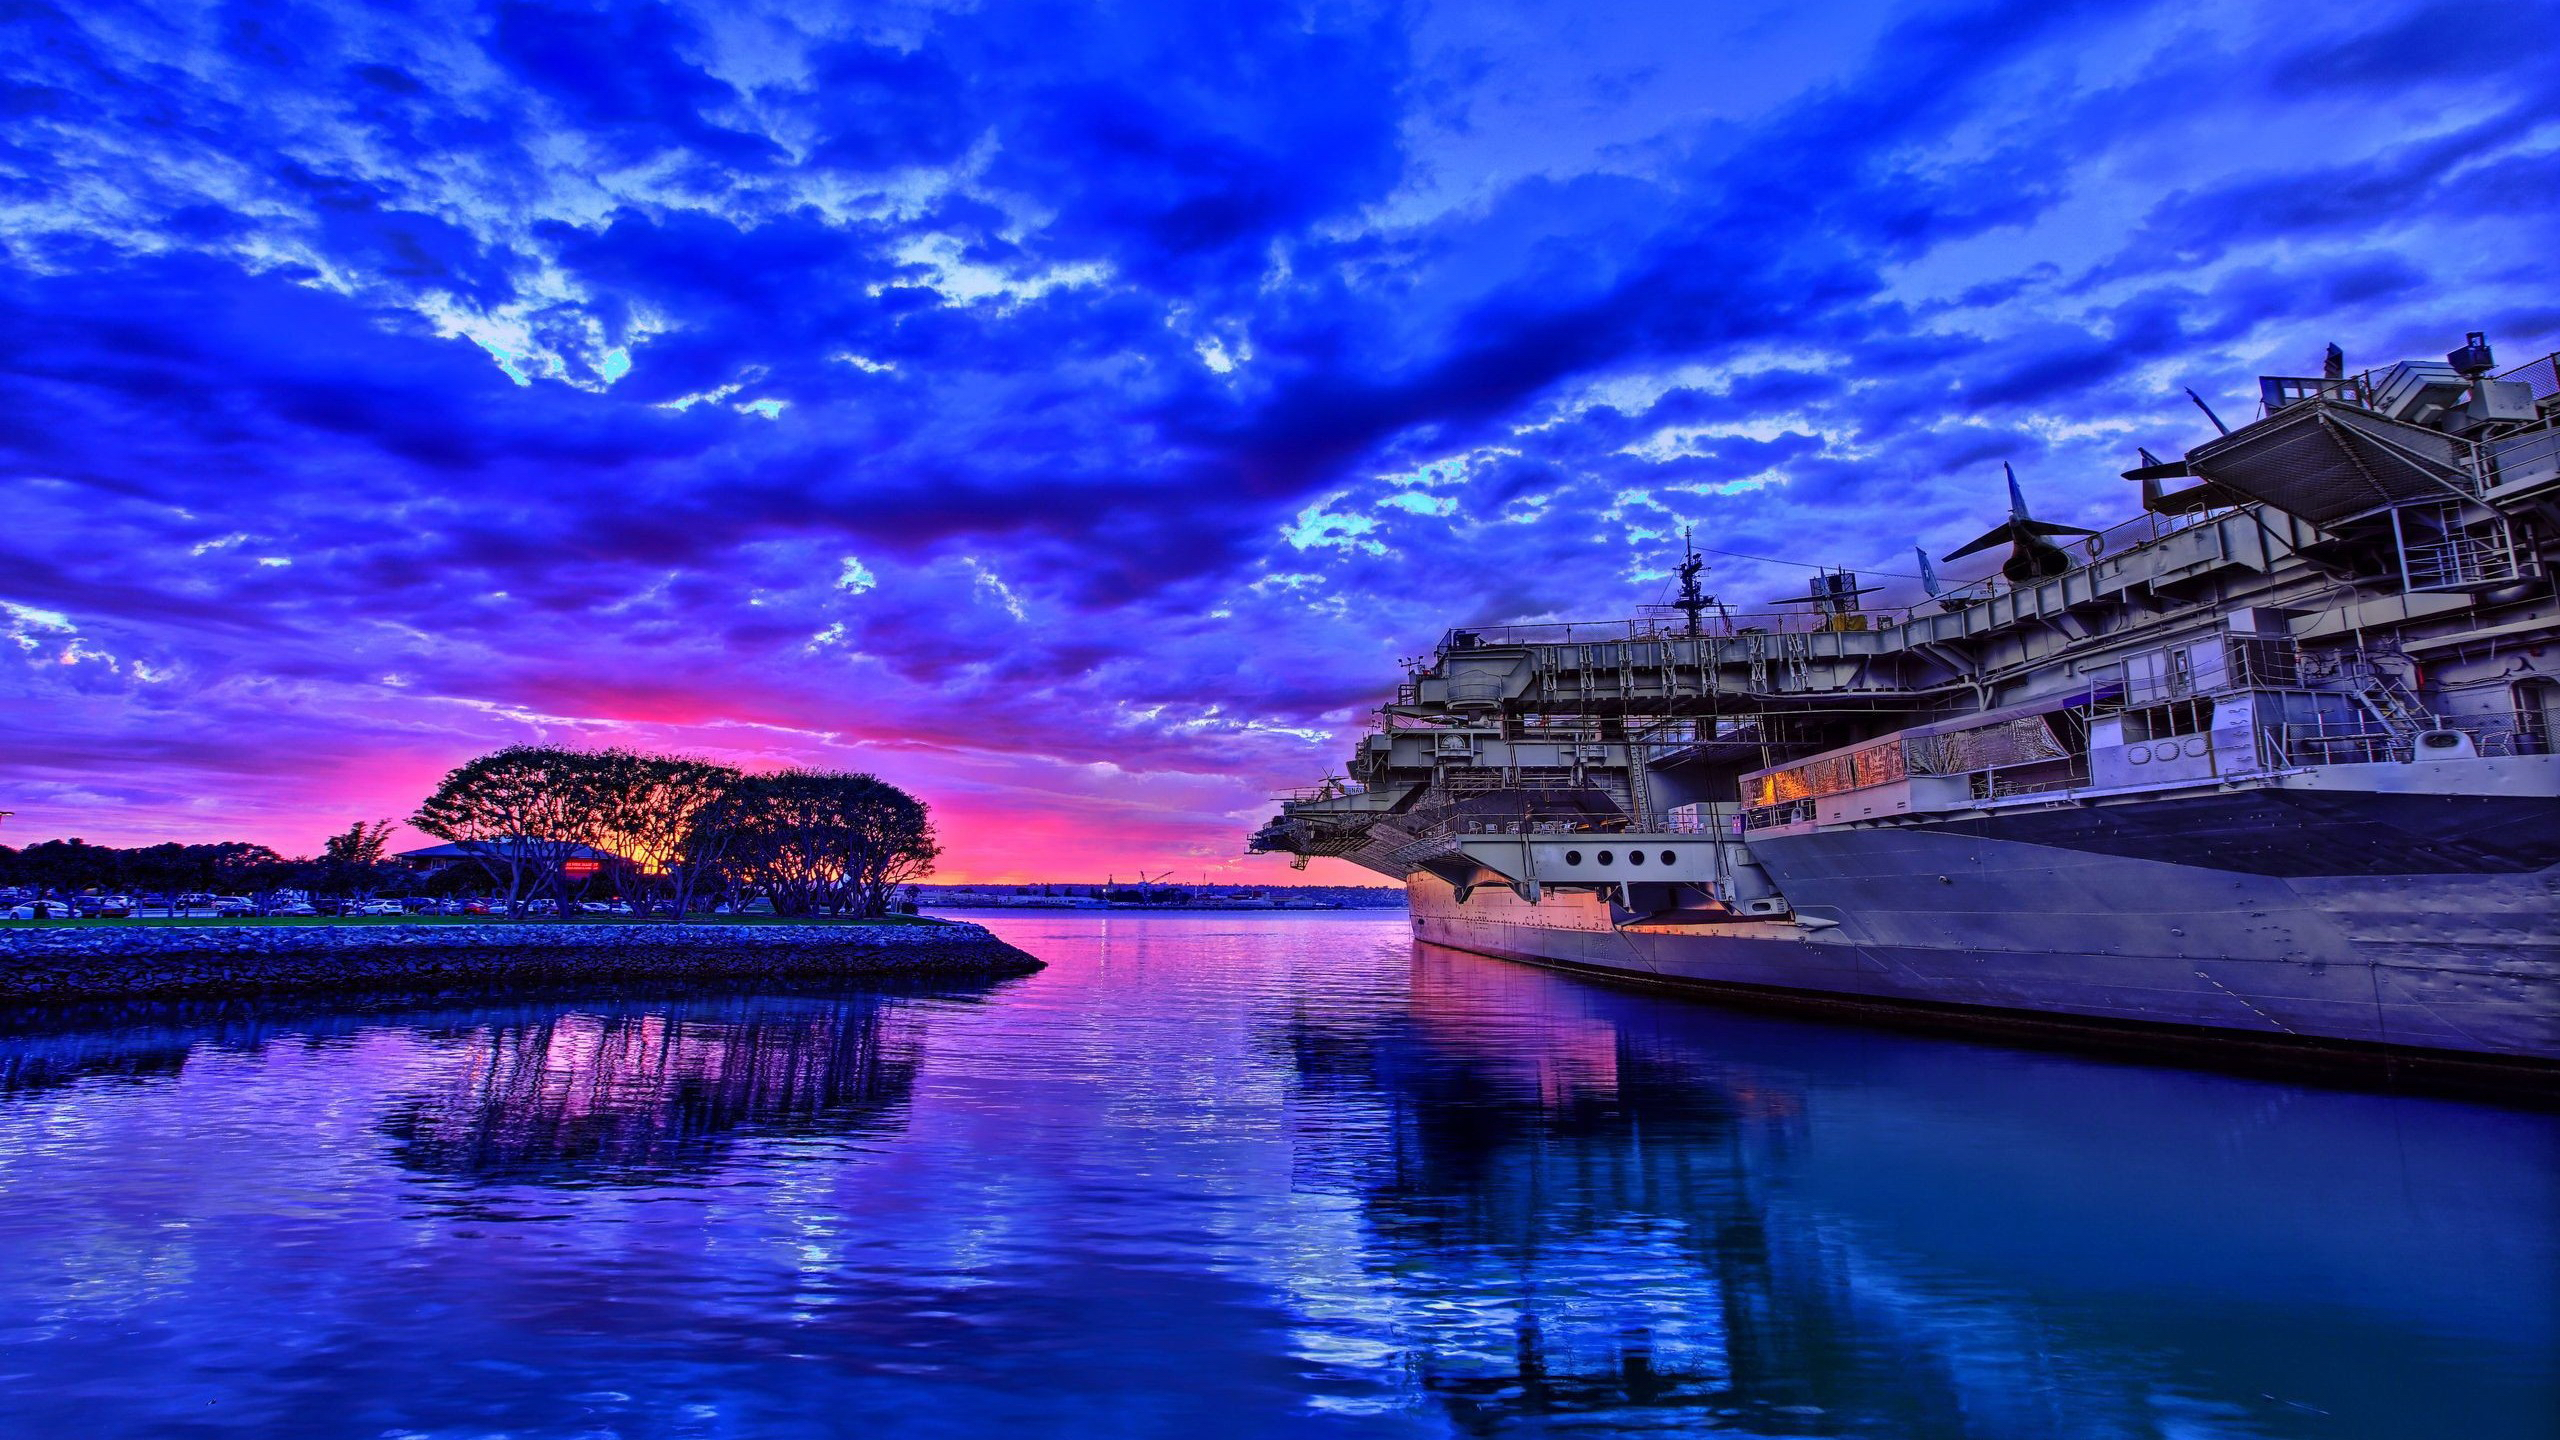 Aircraft Carrier Hd Wallpaper Background Image 2560x1440